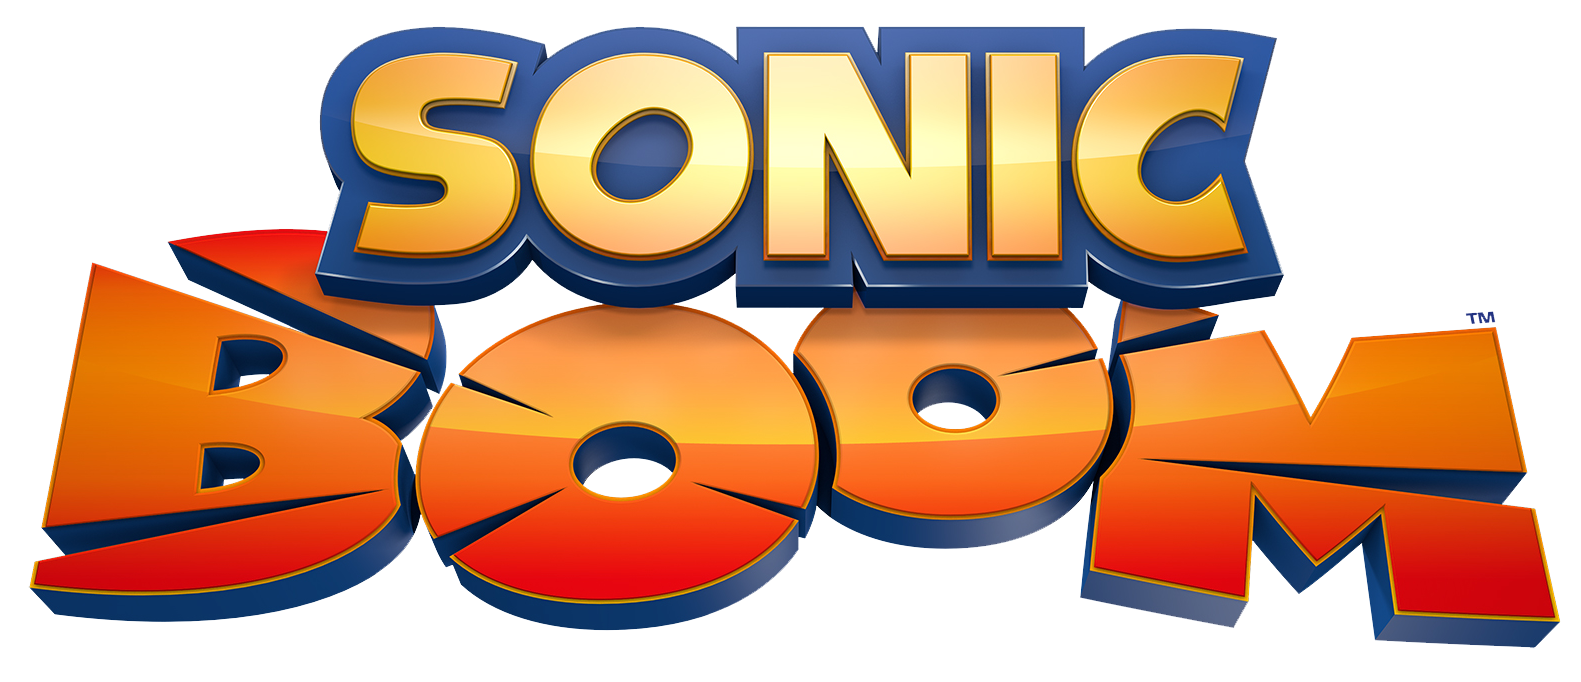 Boom clipart boom word. Sonic tv series news